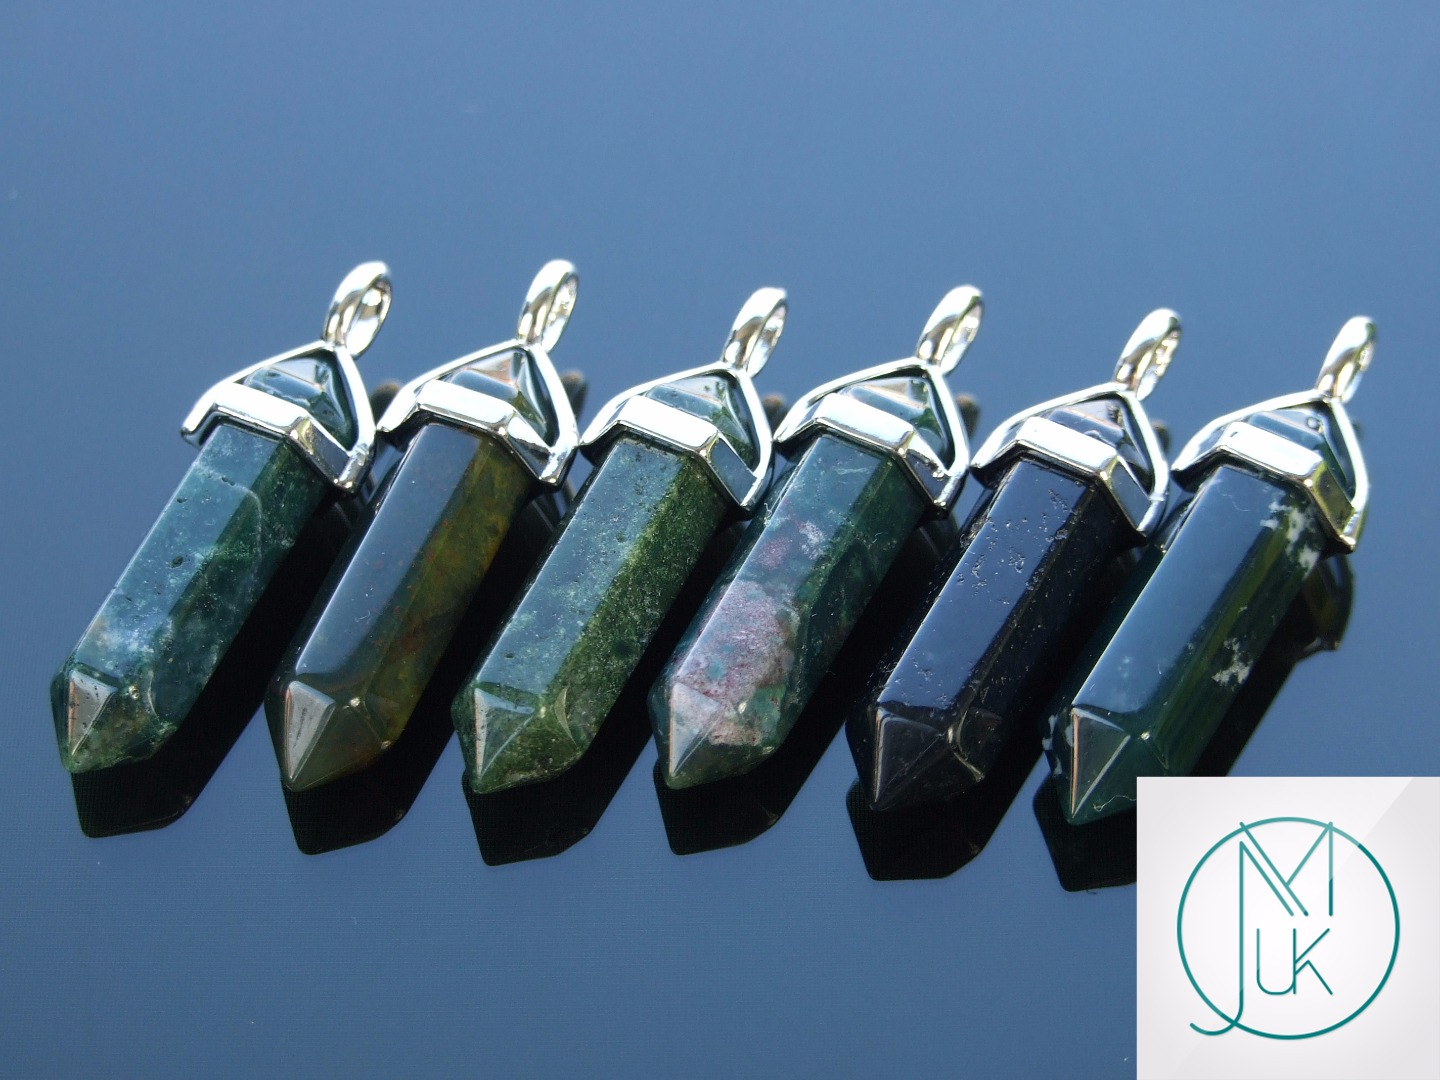 Gemstone-Pendant-for-Necklace-Manmade-or-Natural-Quartz-Crystal-Healing-Stone thumbnail 57